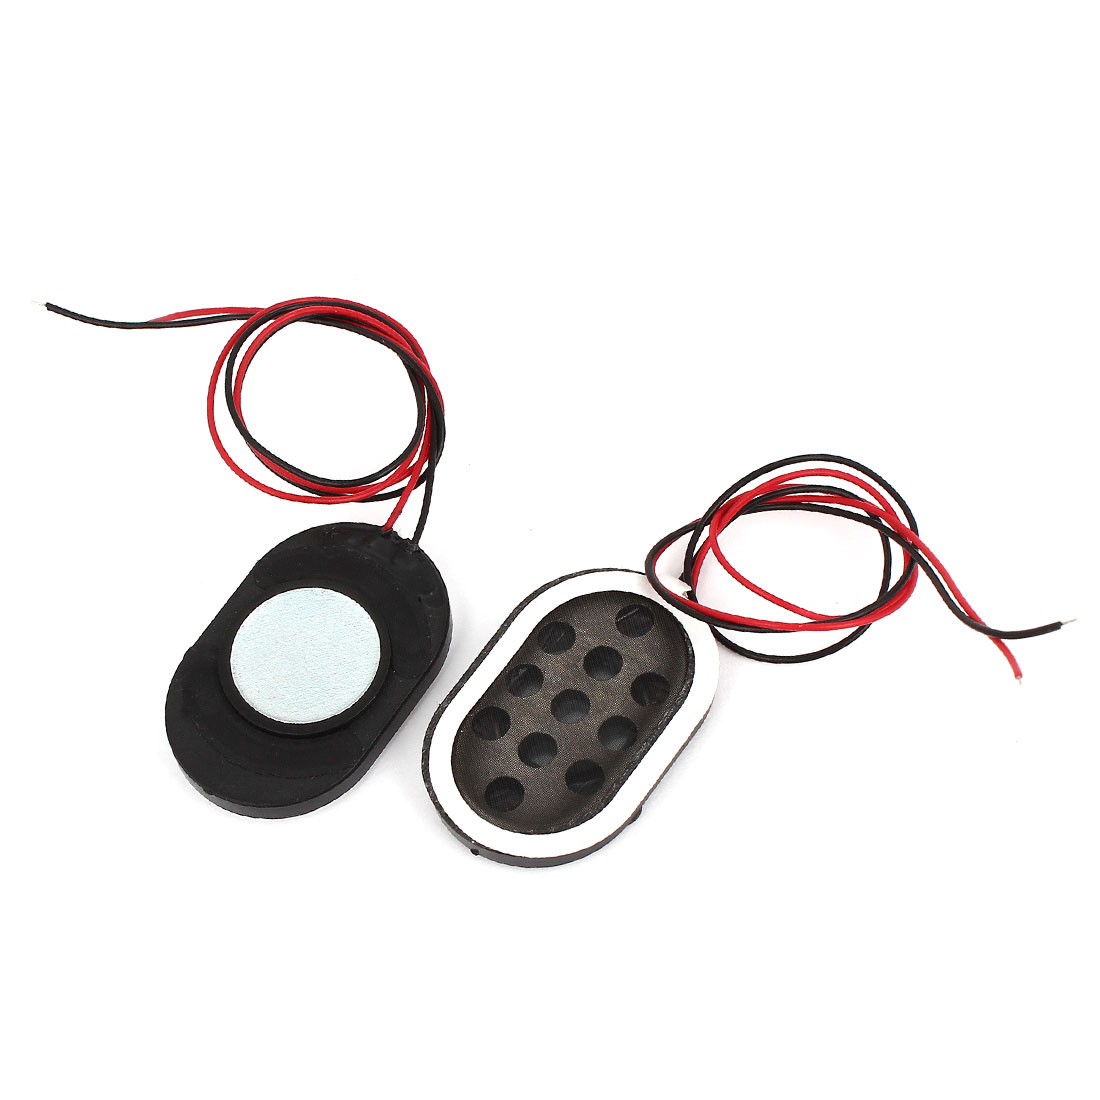 2Pcs 1.5W 8 Ohm 2-Wired Oval Plastic Shell Global Position System Navigator Voice Amplifier Speaker Loudspeaker Horn 30mm x 20mm